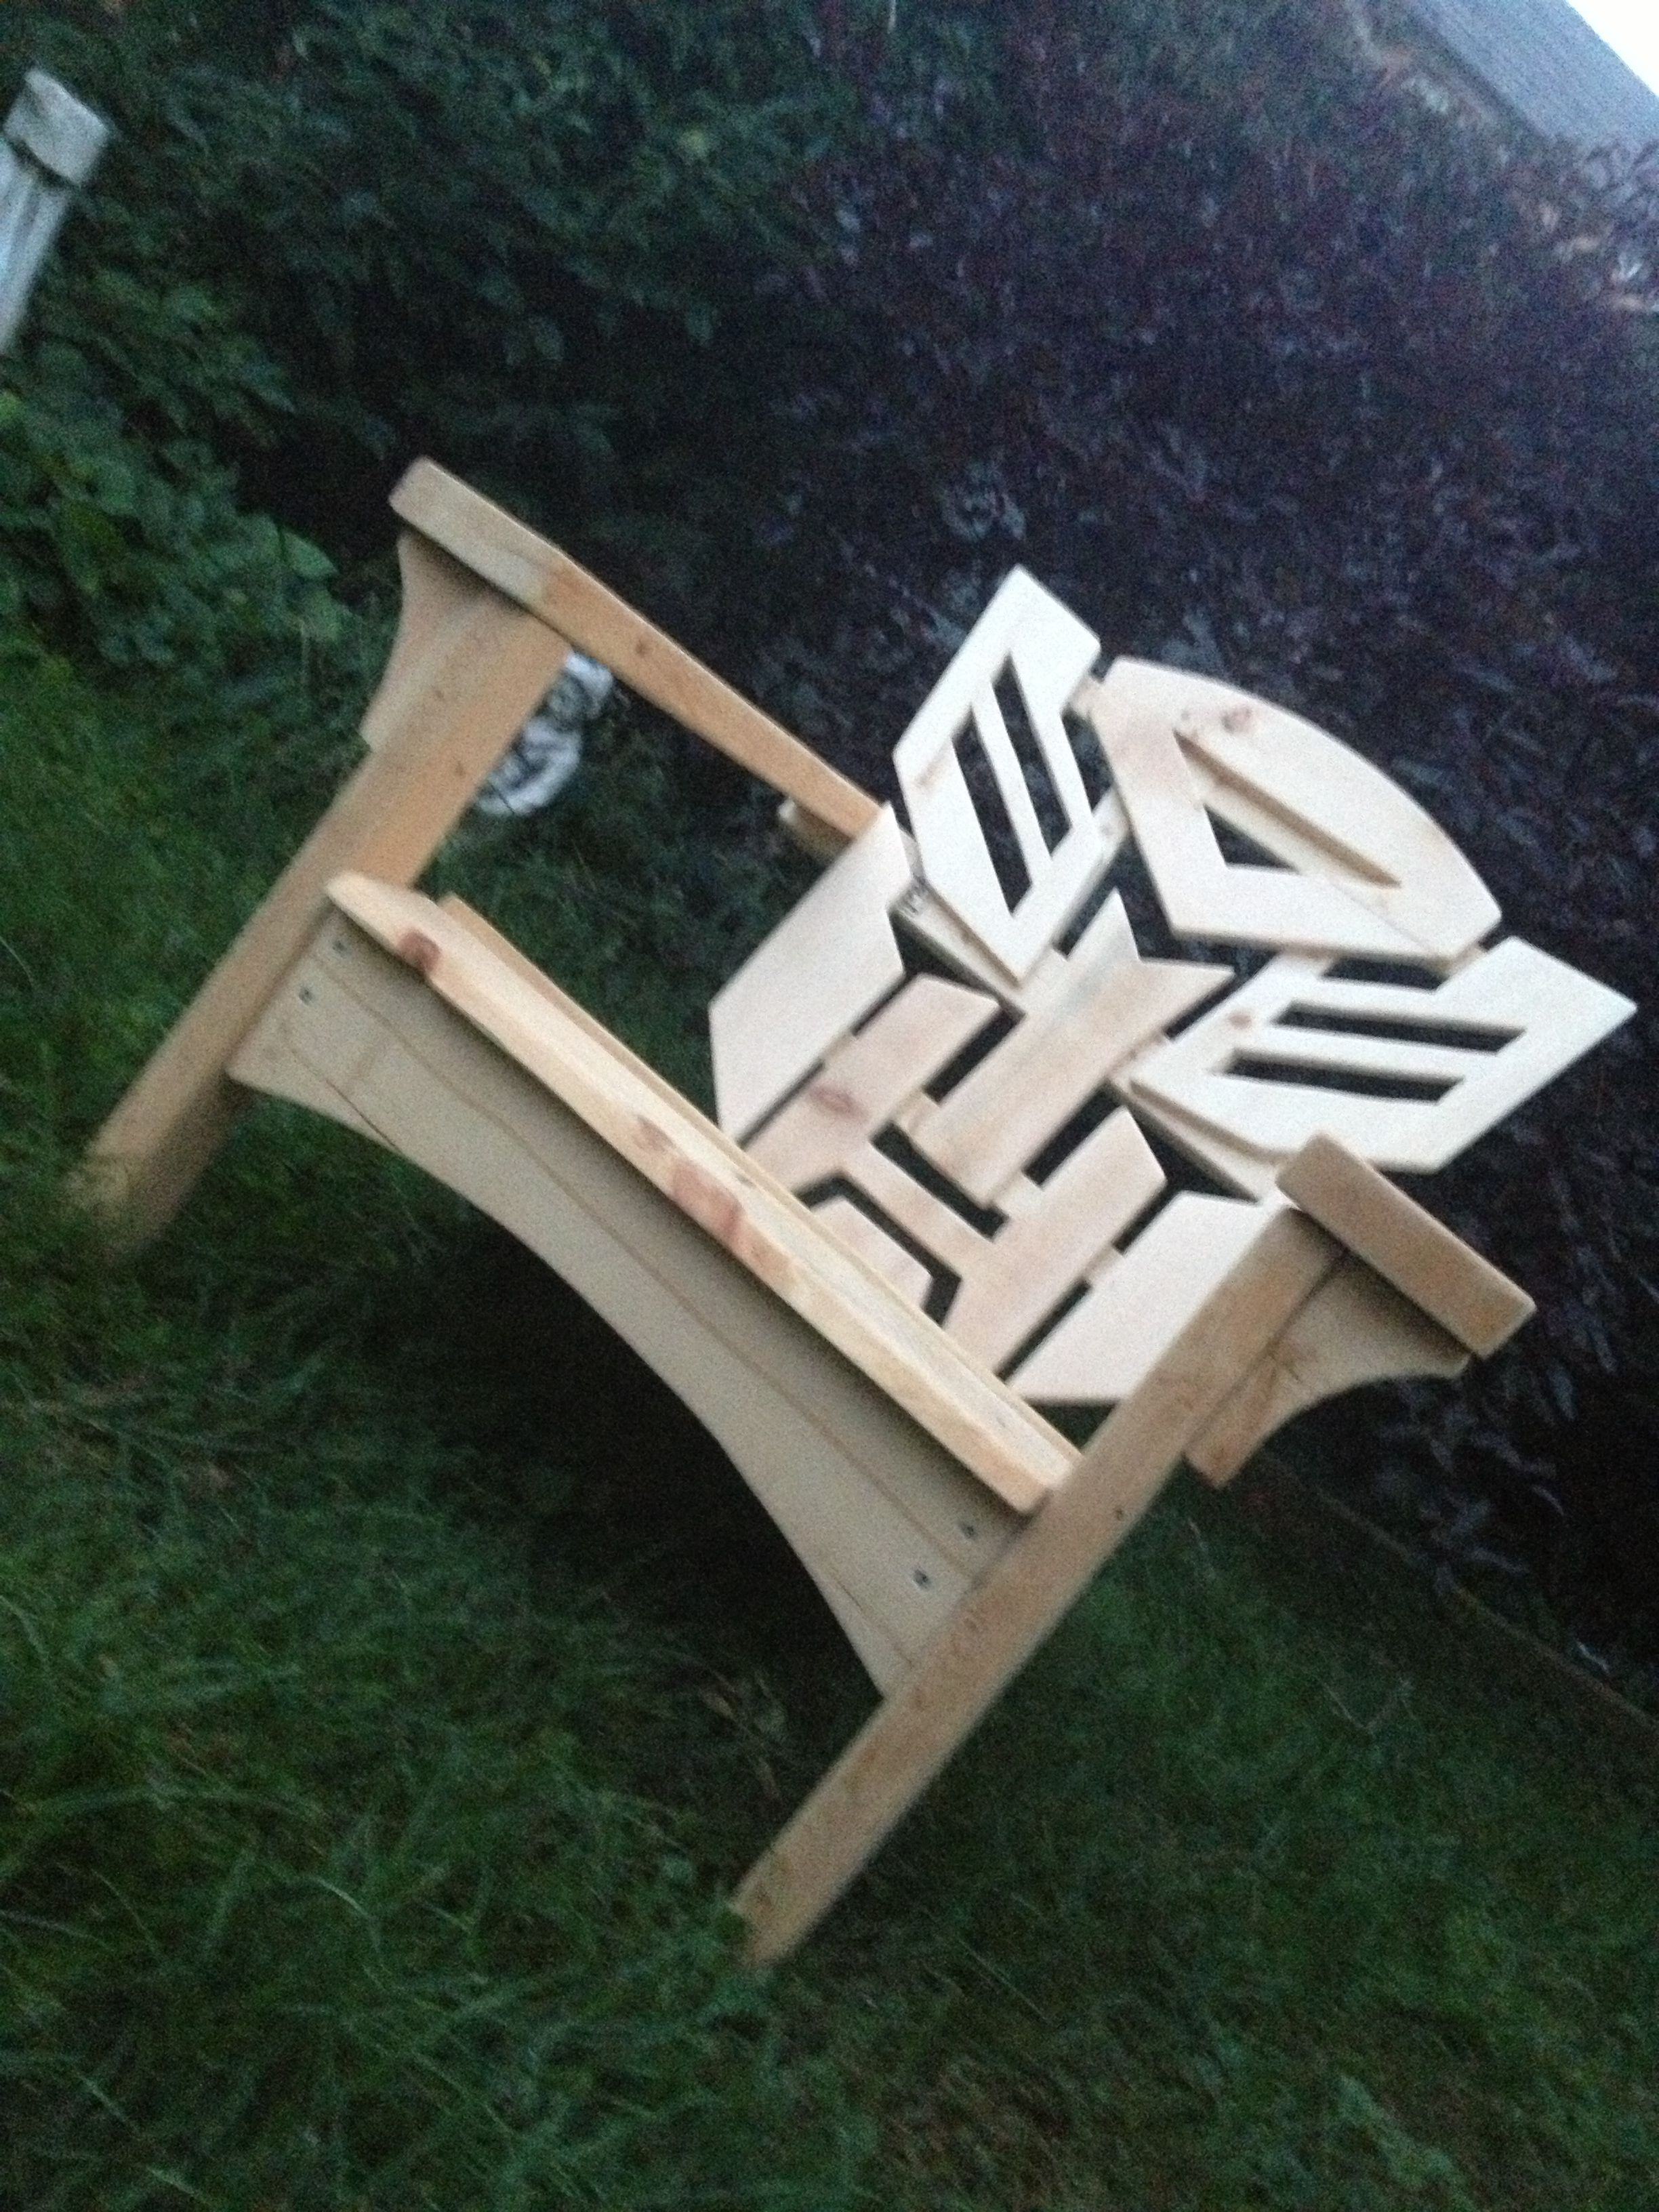 Autobots - Adirondack muskoka chairs | Garden projects | Pinterest ...